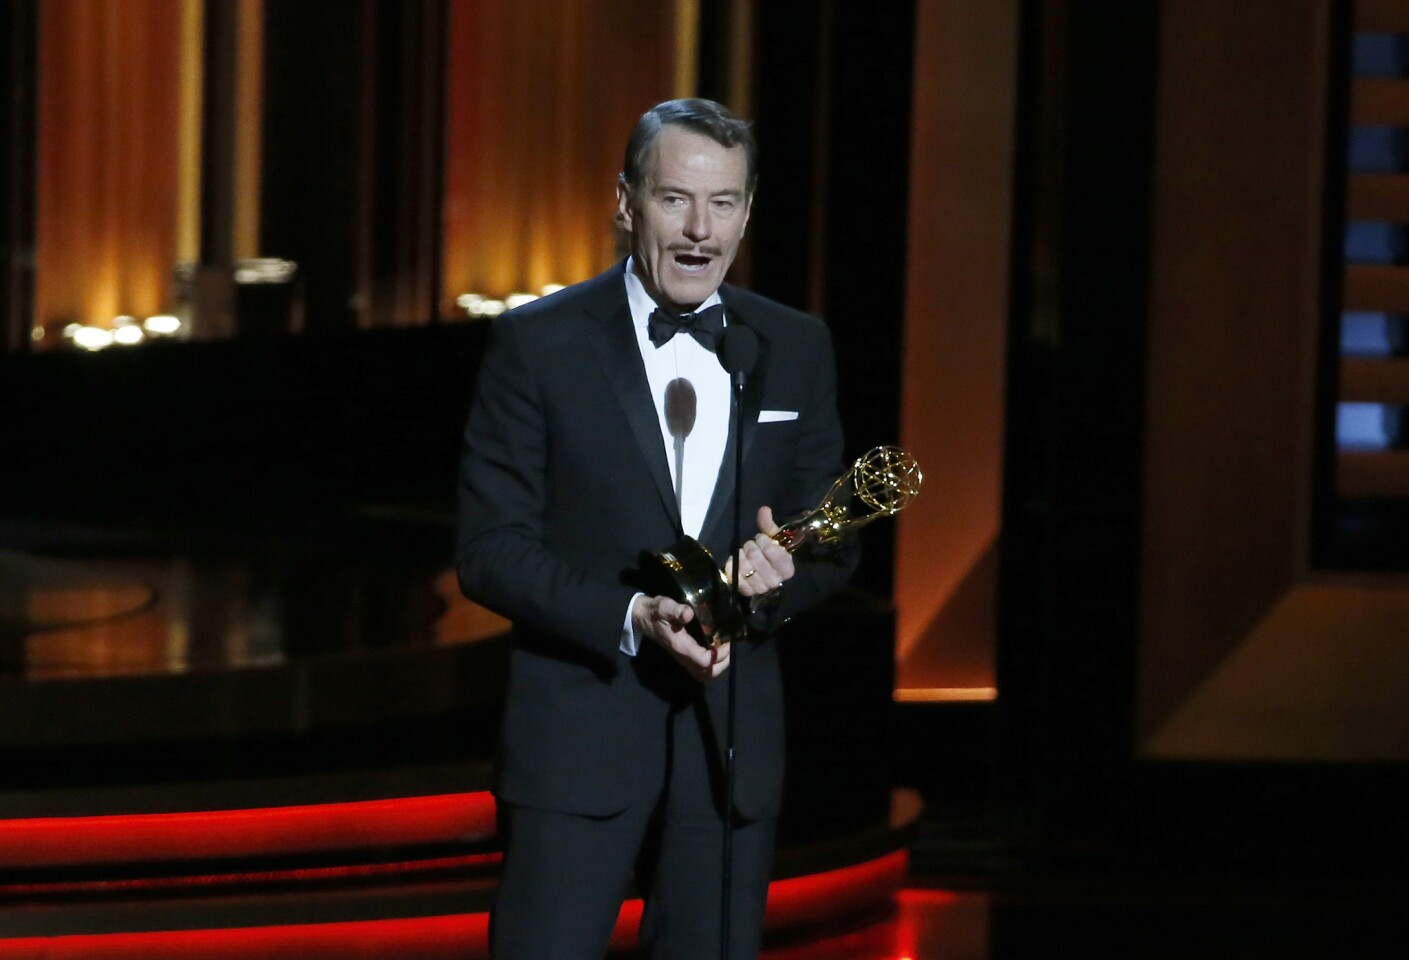 """Bryan Cranston of """"Breaking Bad"""" wins the lead actor in a drama, his fifth Emmy win. """"I love to act, it is a passion of mine and I will do it until my last breath,"""" Cranston says. He dedicates the award to all the """"Sneaky Petes,"""" a nickname his family gave him because of his manipulative ways as a young child."""